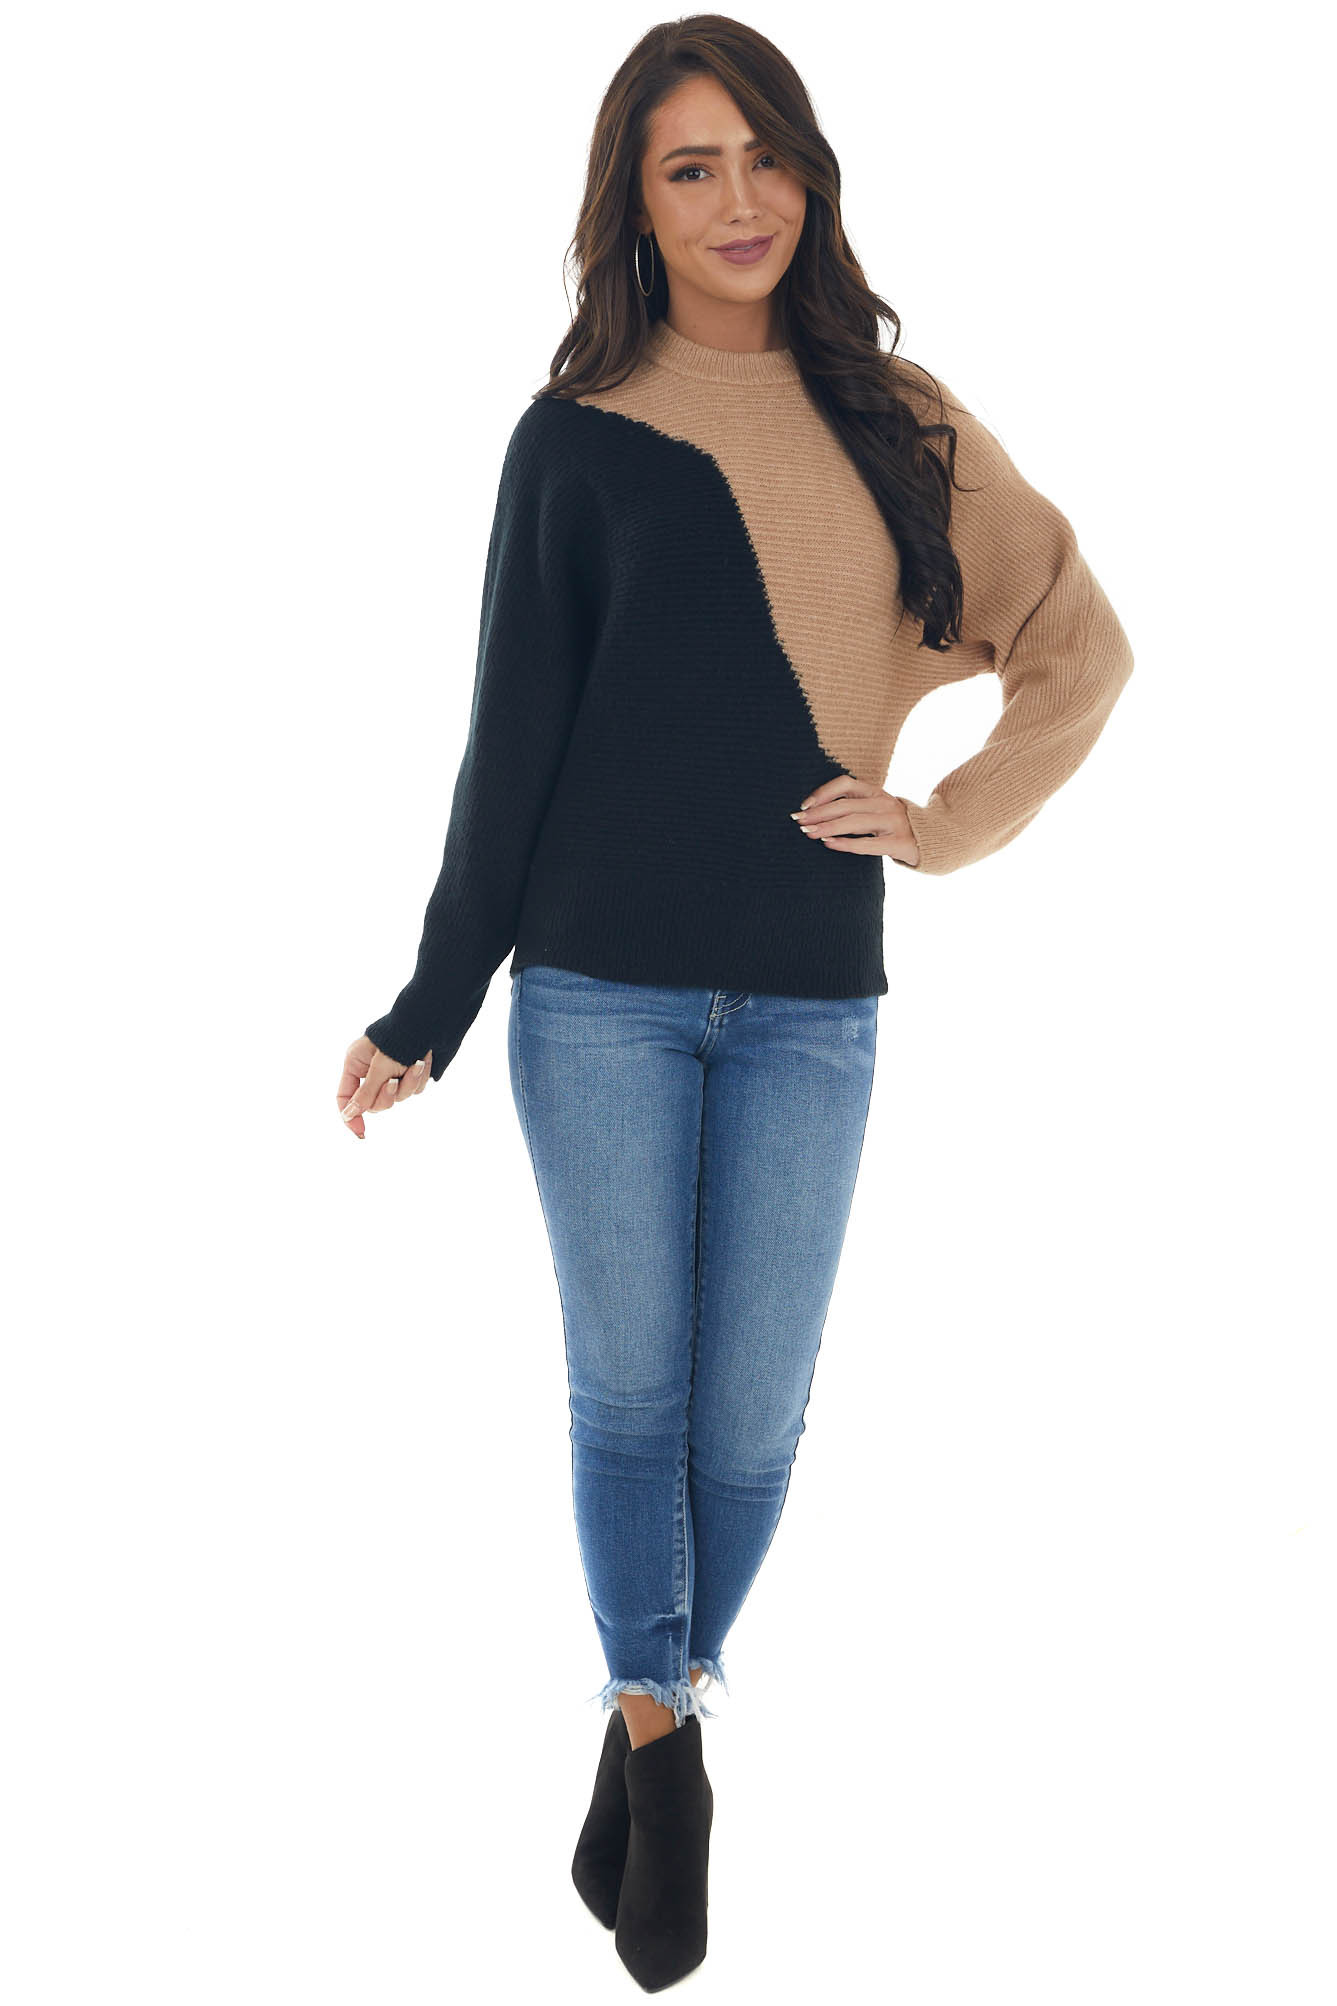 Black and Sand Asymmetrical Colorblock Sweater